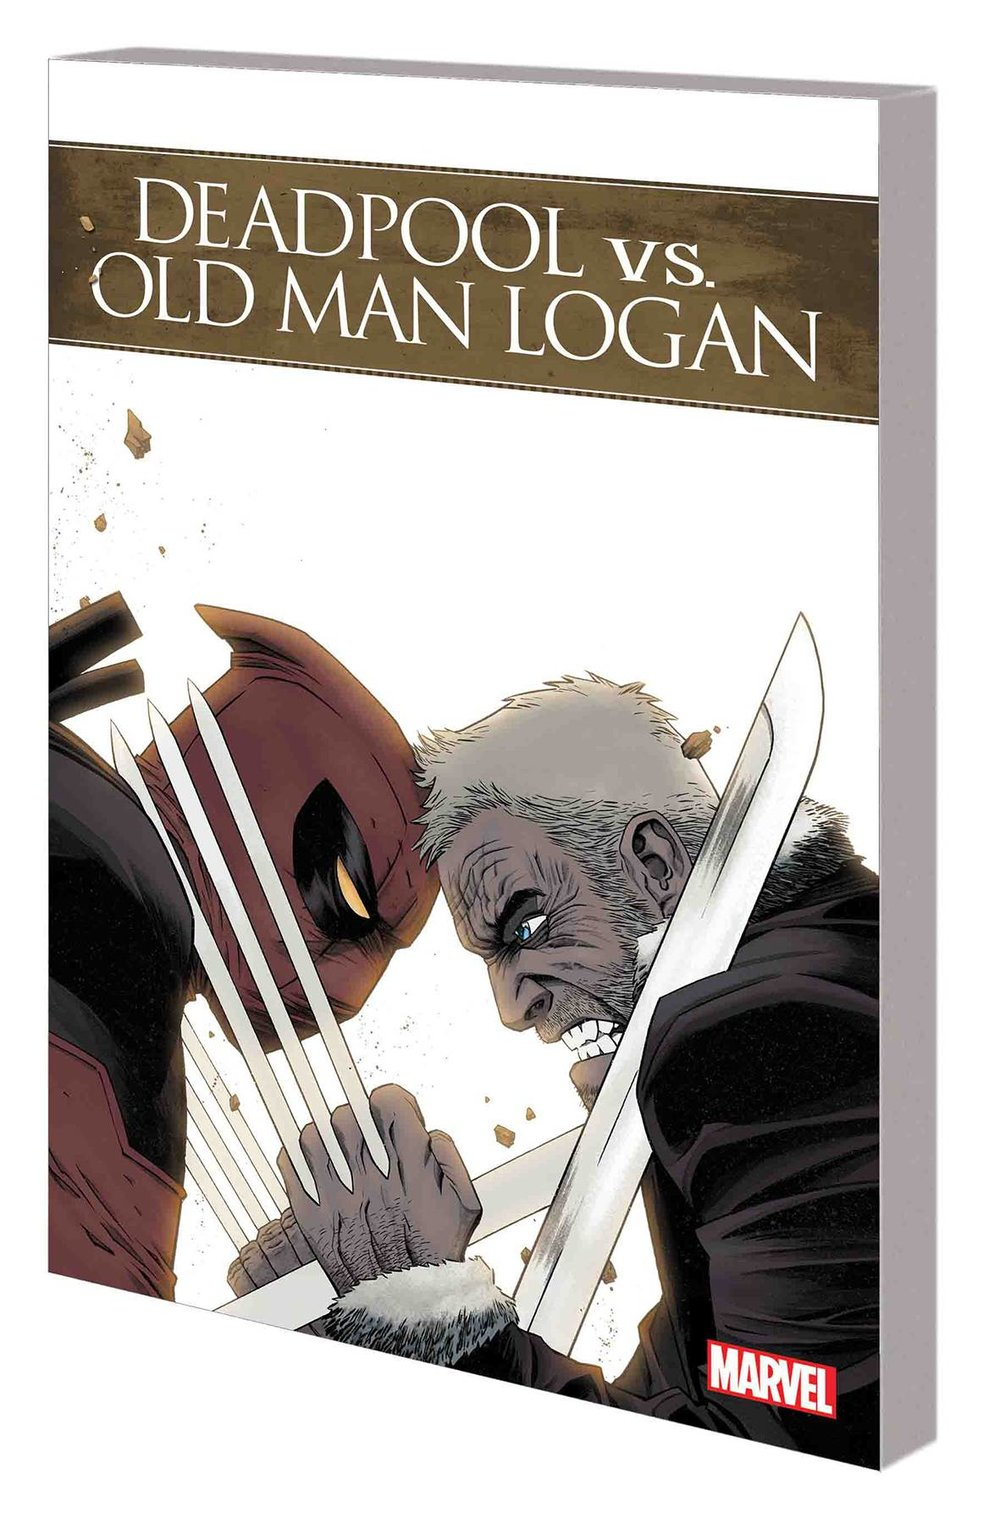 DEADPOOL VS OLD MAN LOGAN TP.jpg